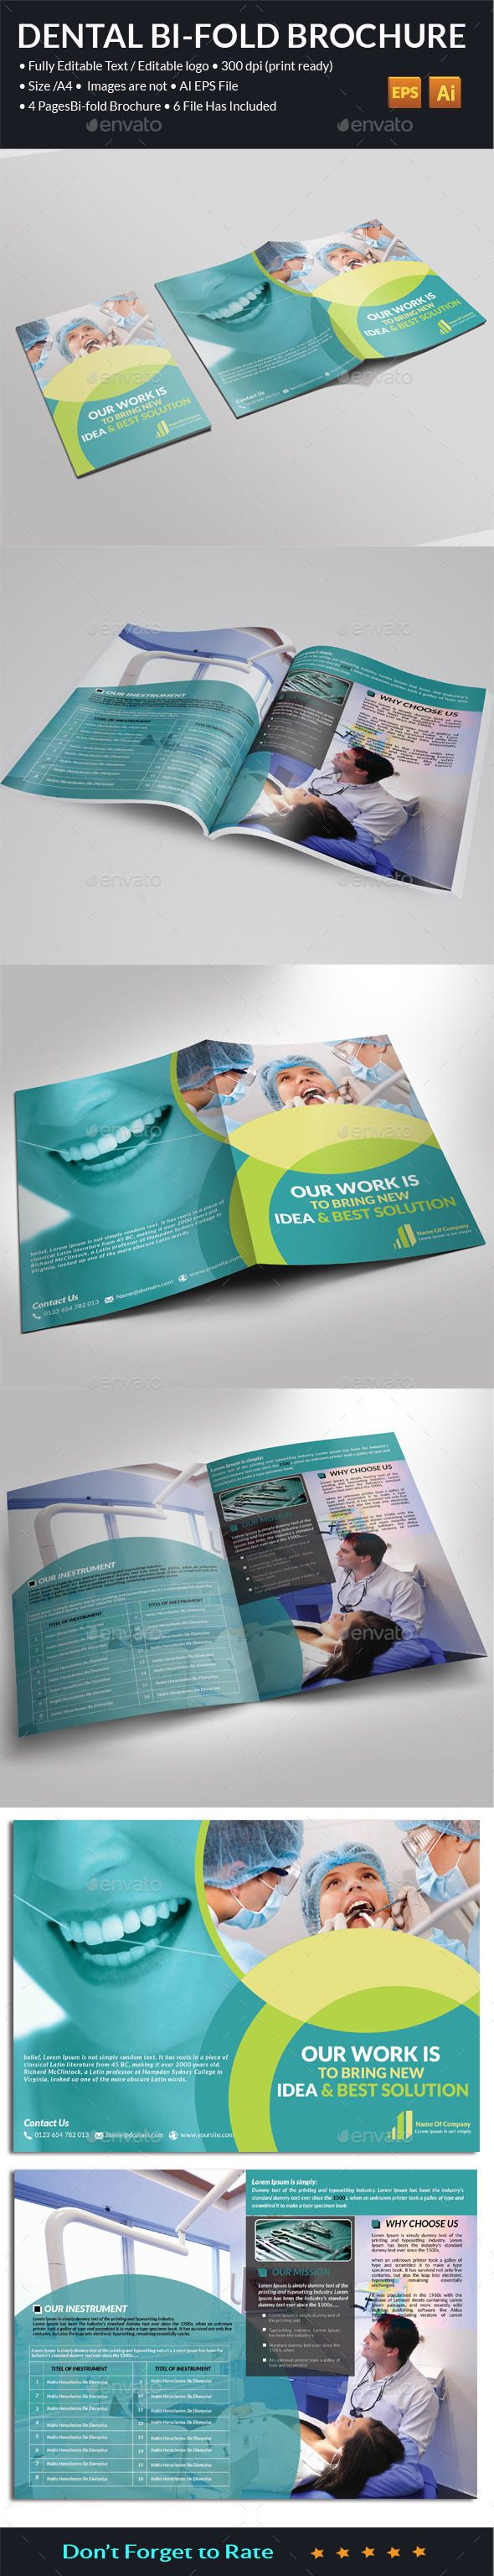 Dental Bi-Fold Brochure